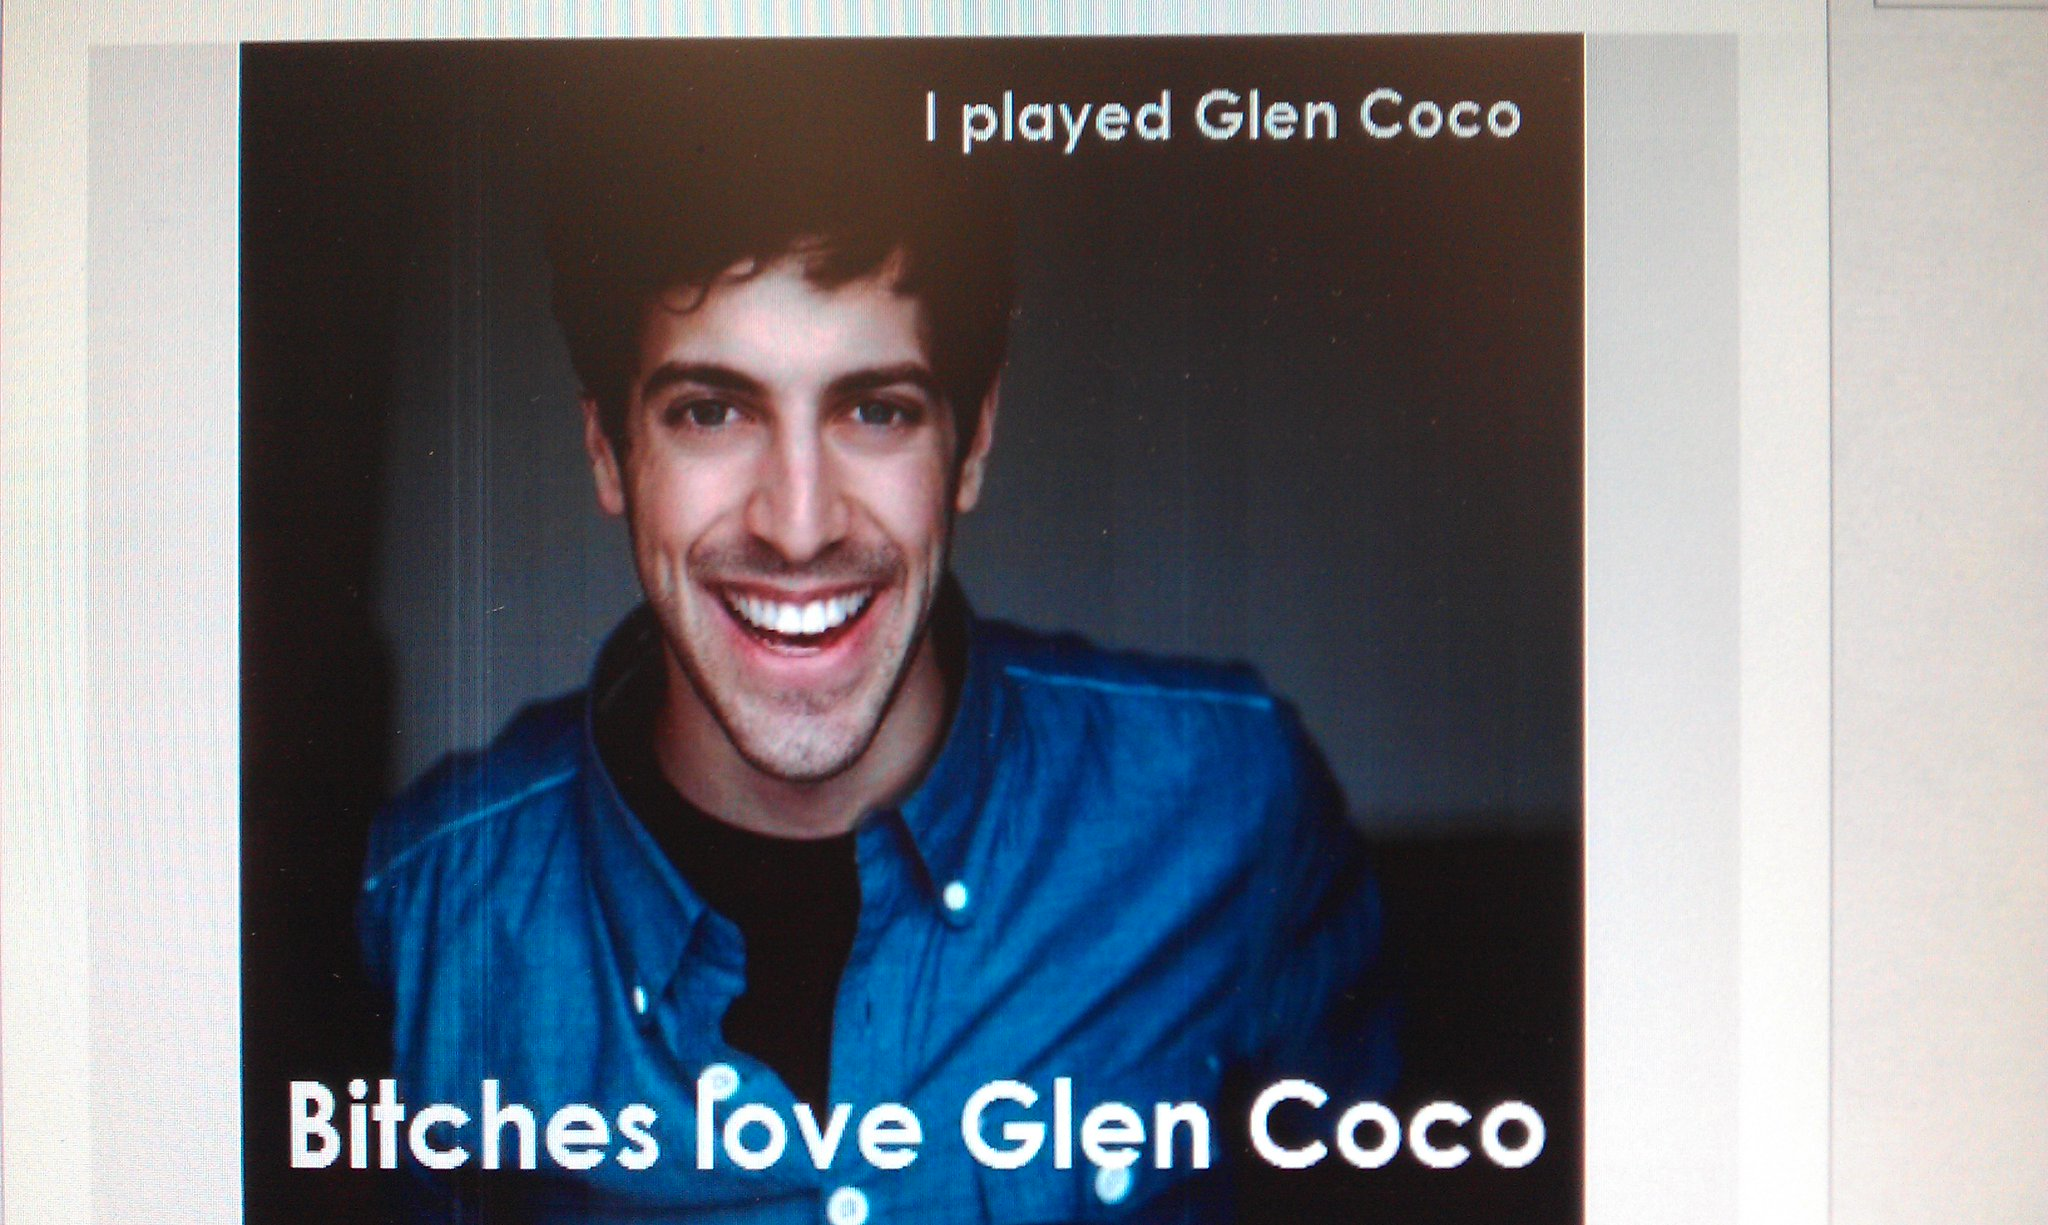 You go Glen Coco! http://t.co/bh0PMIt4